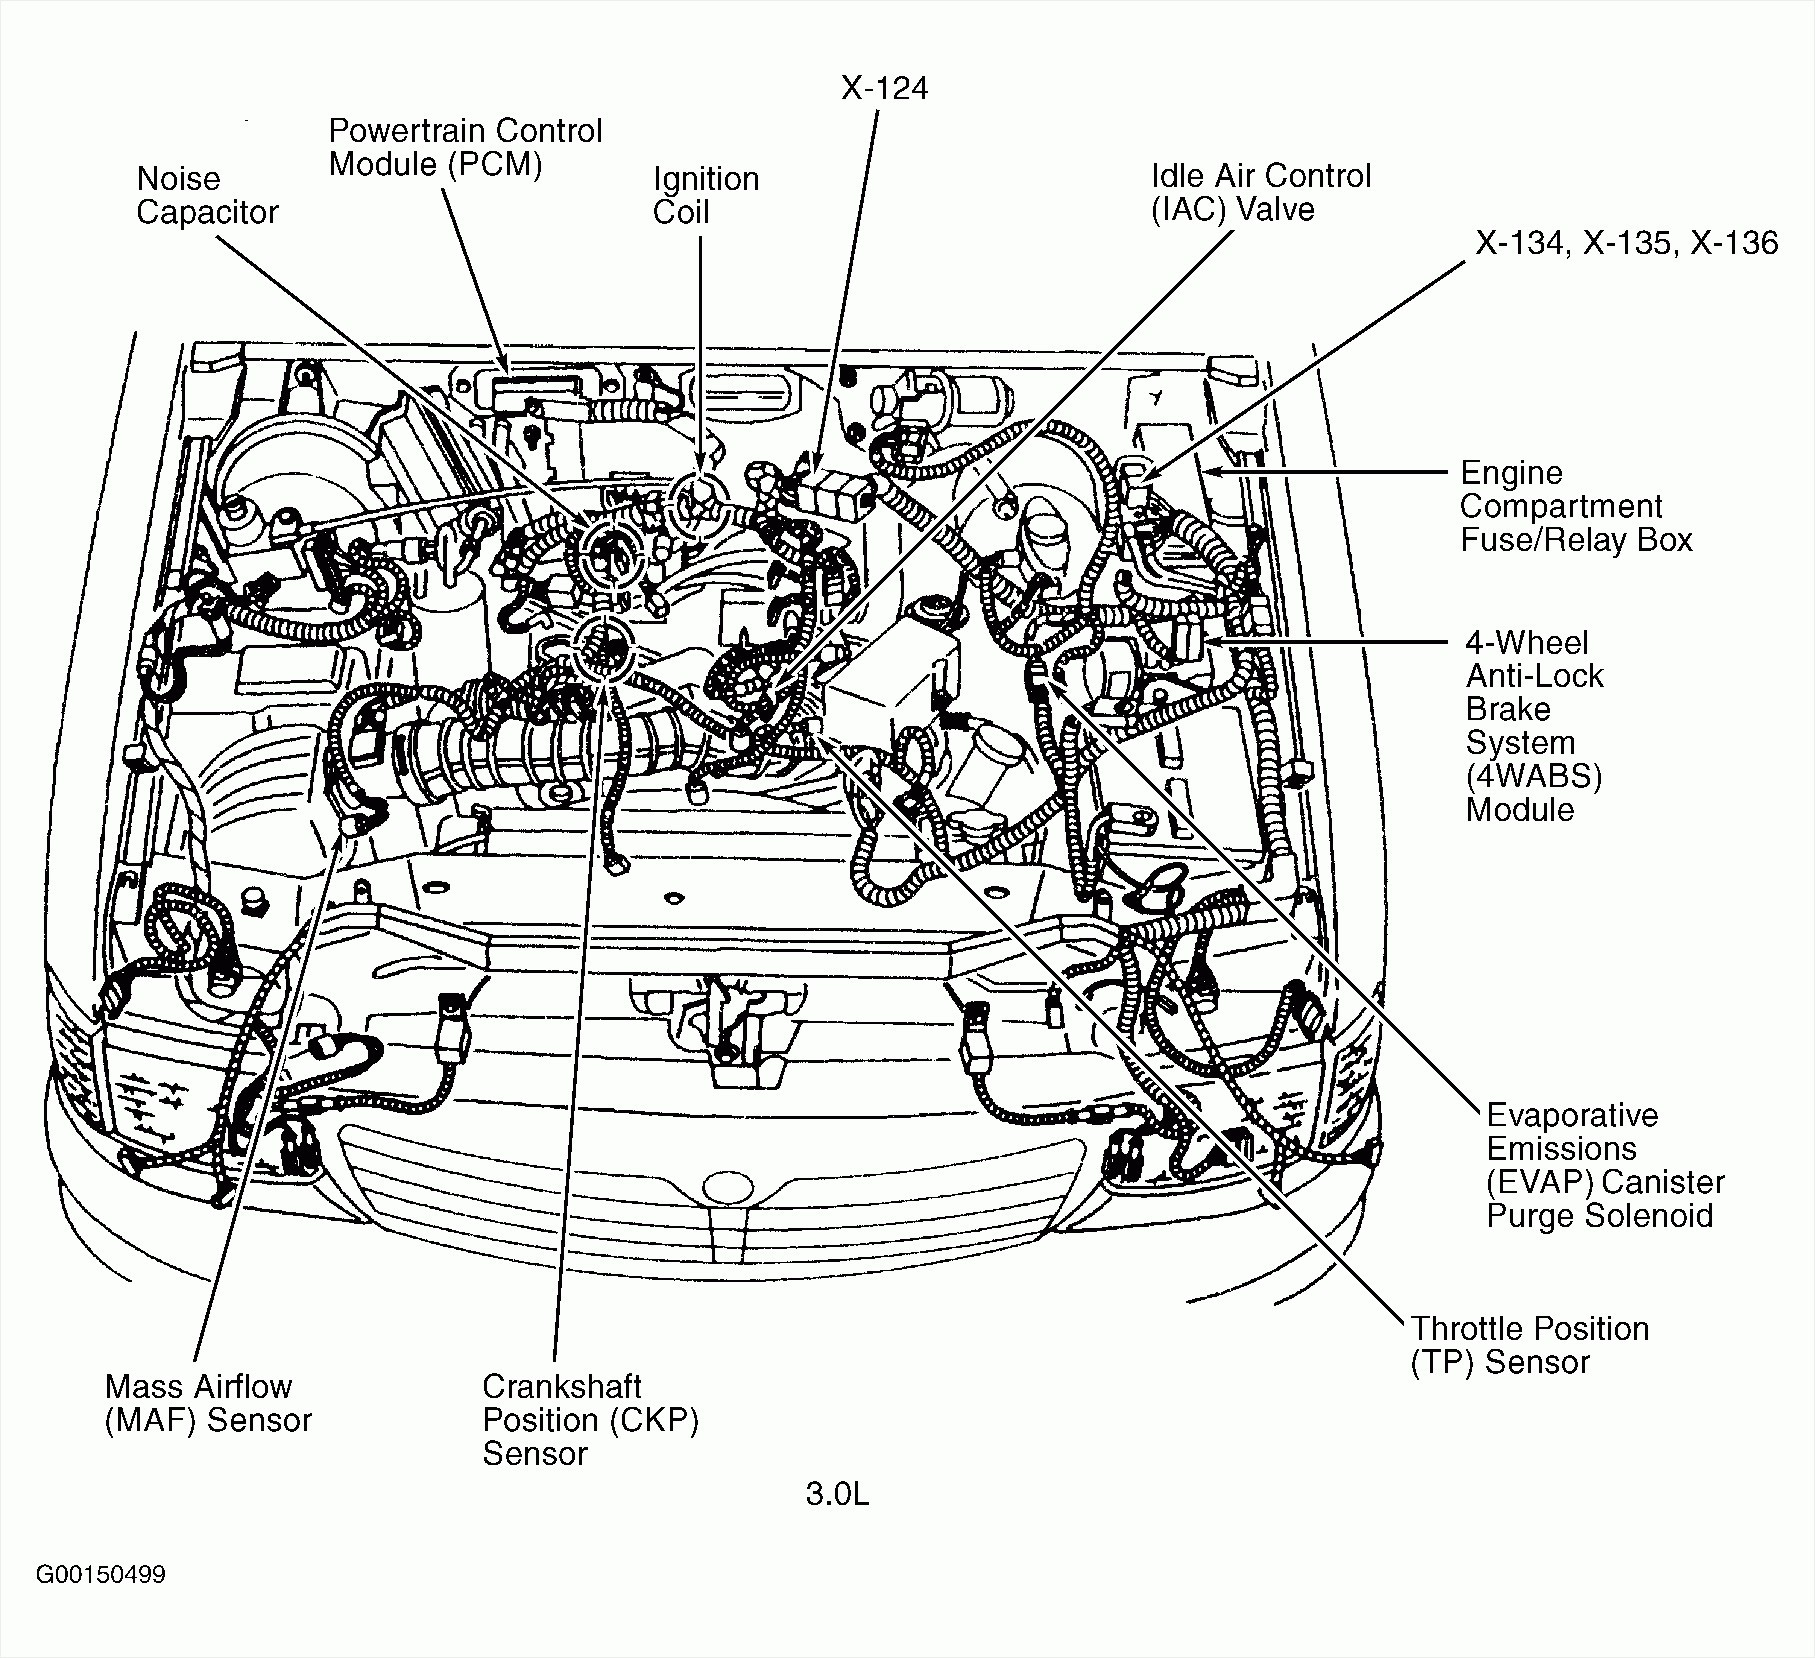 chevy truck supercharger kit as well v6 engine diagram moreover 4 3 98 Chevy 4.3 Engine Diagram